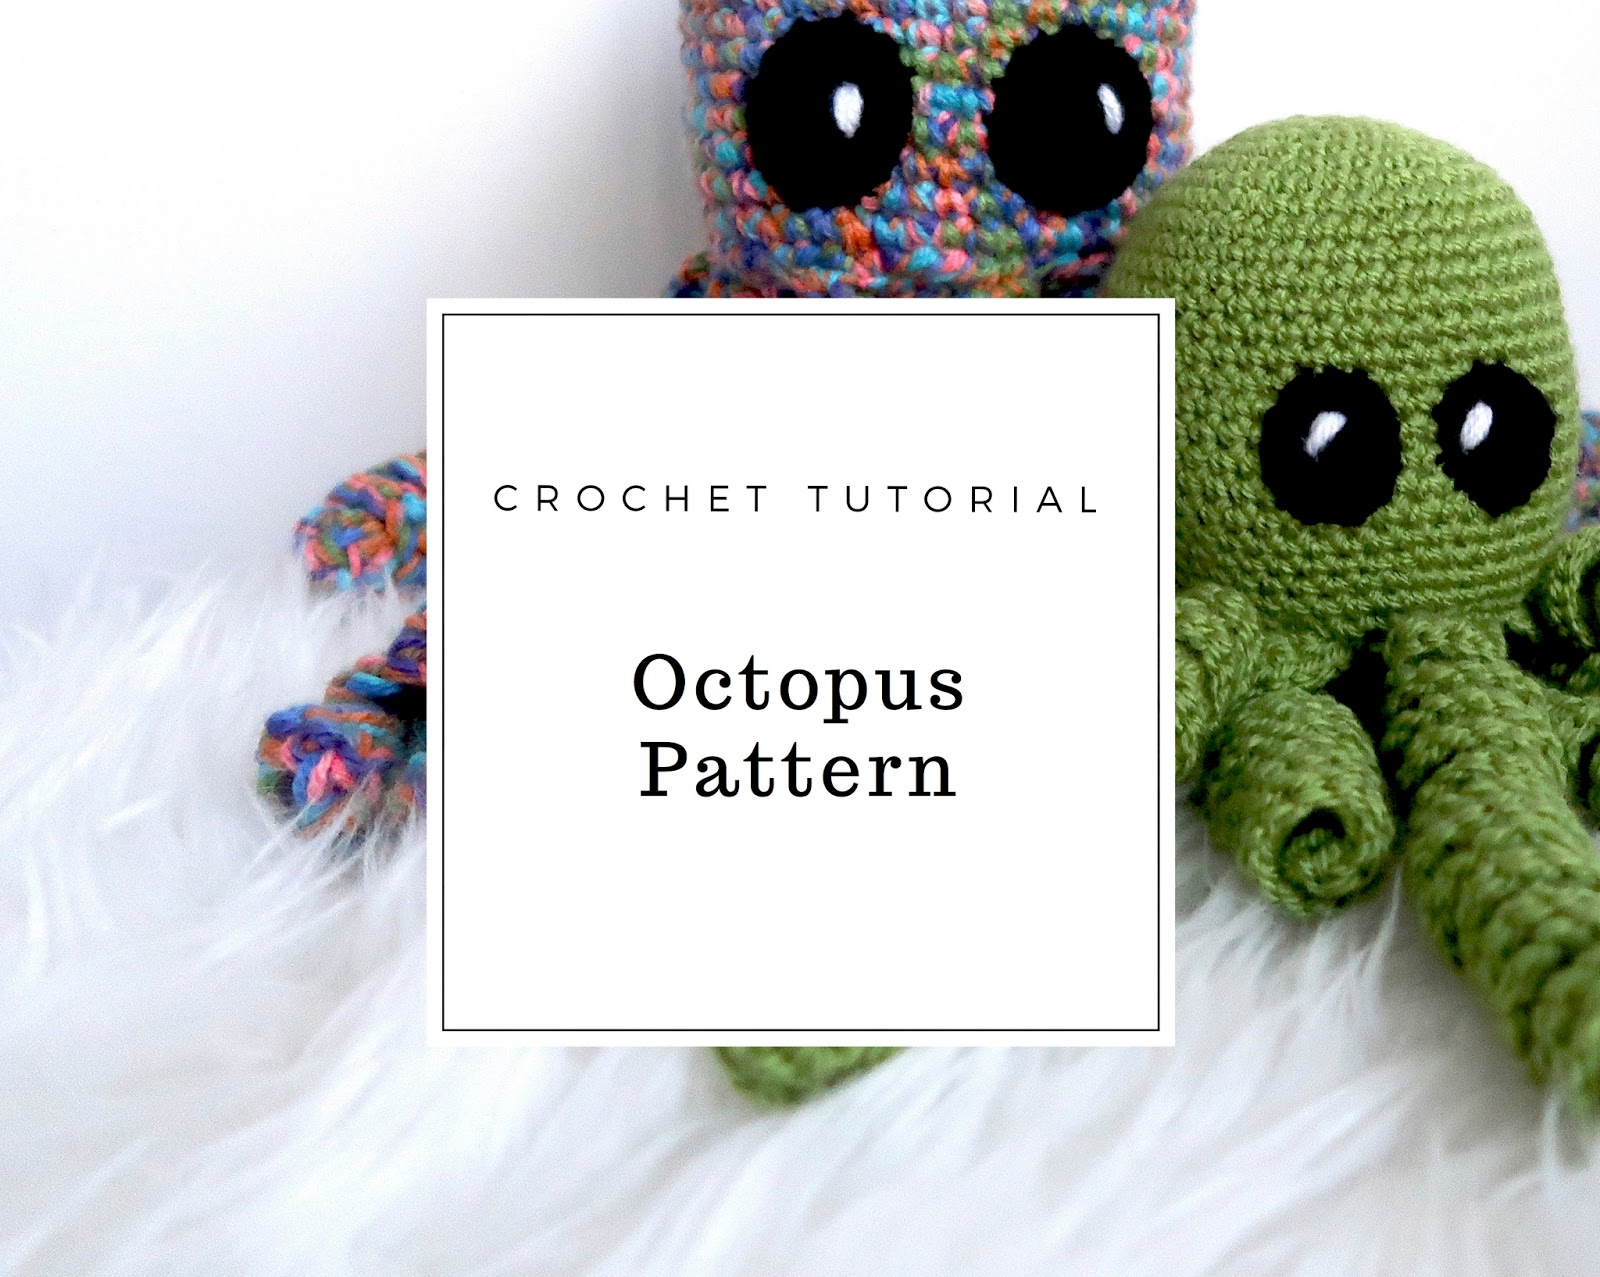 Easy Crochet Octopus Pattern - The Crafty Co | The Crafty Co